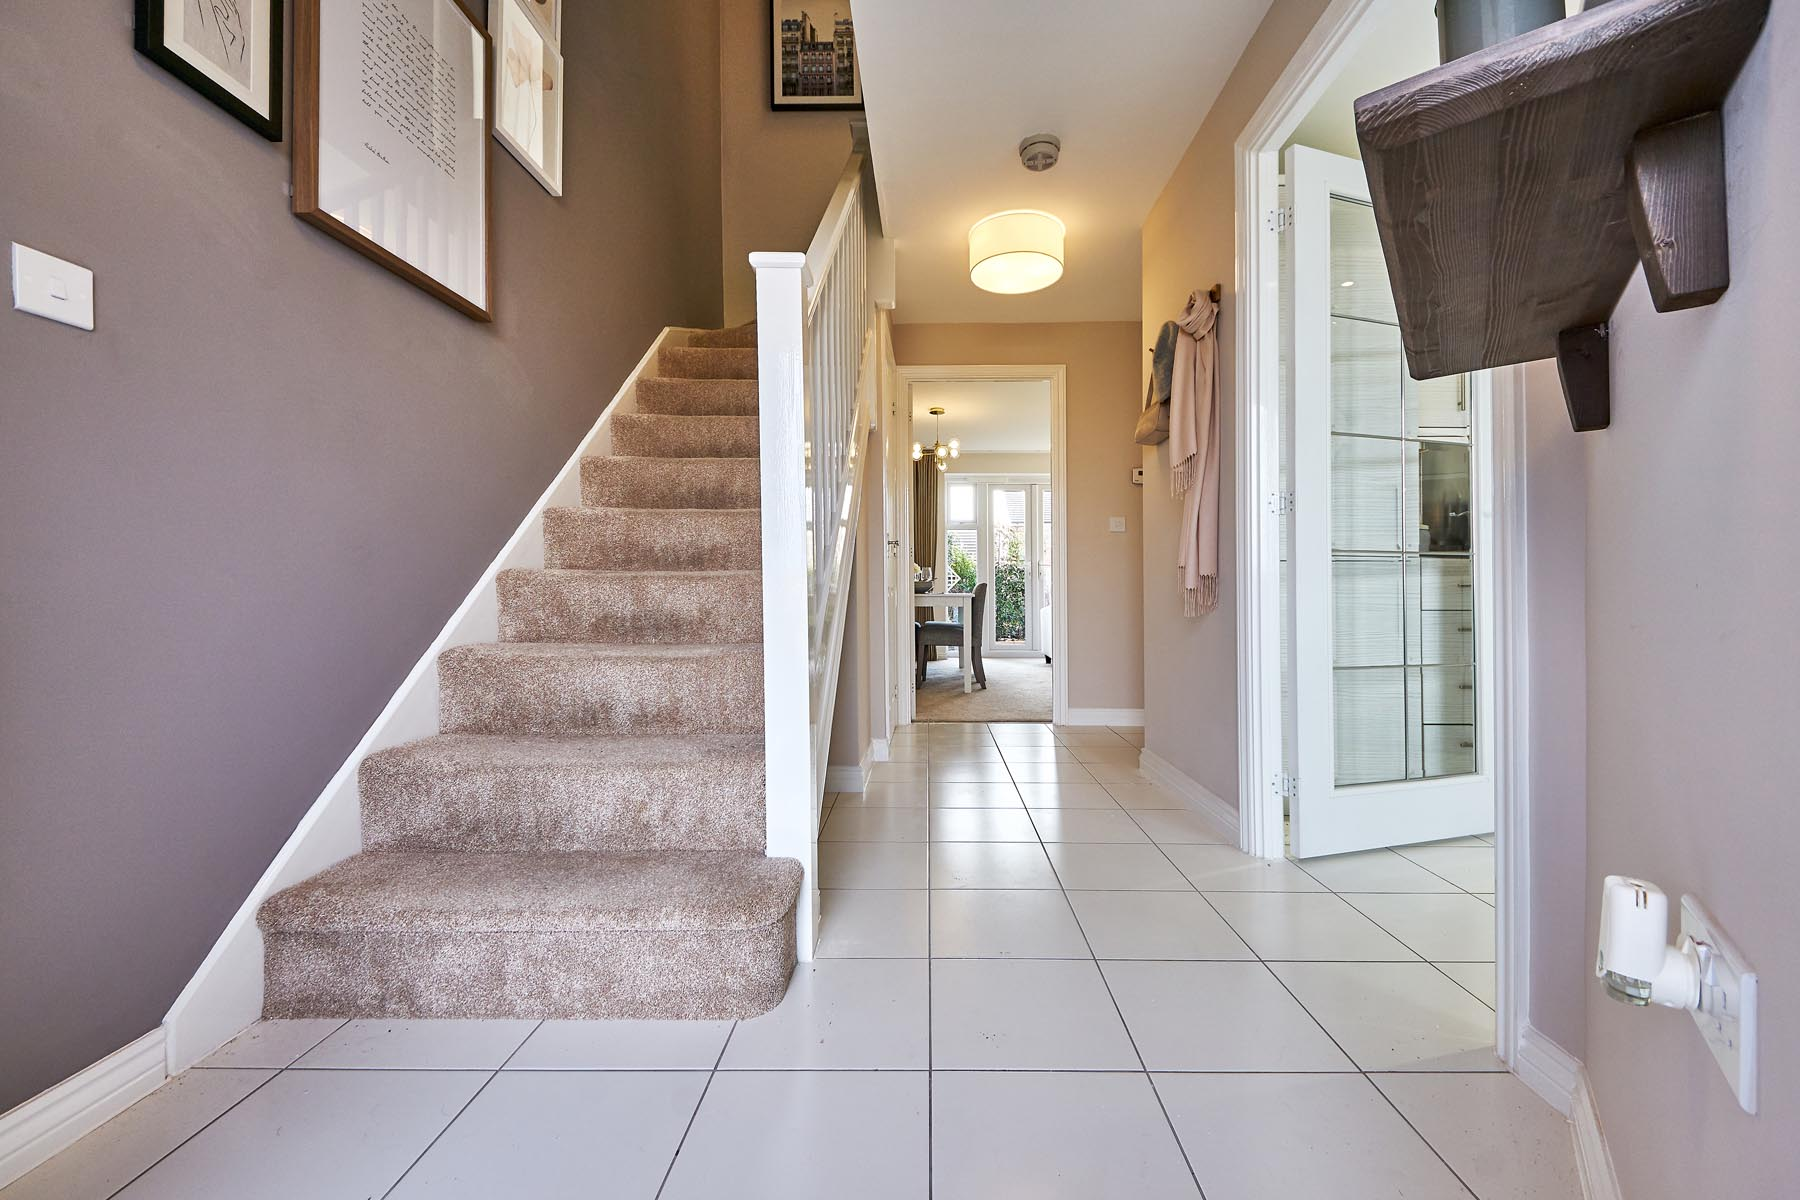 TW Exeter - Sherford - Flatford example hallway